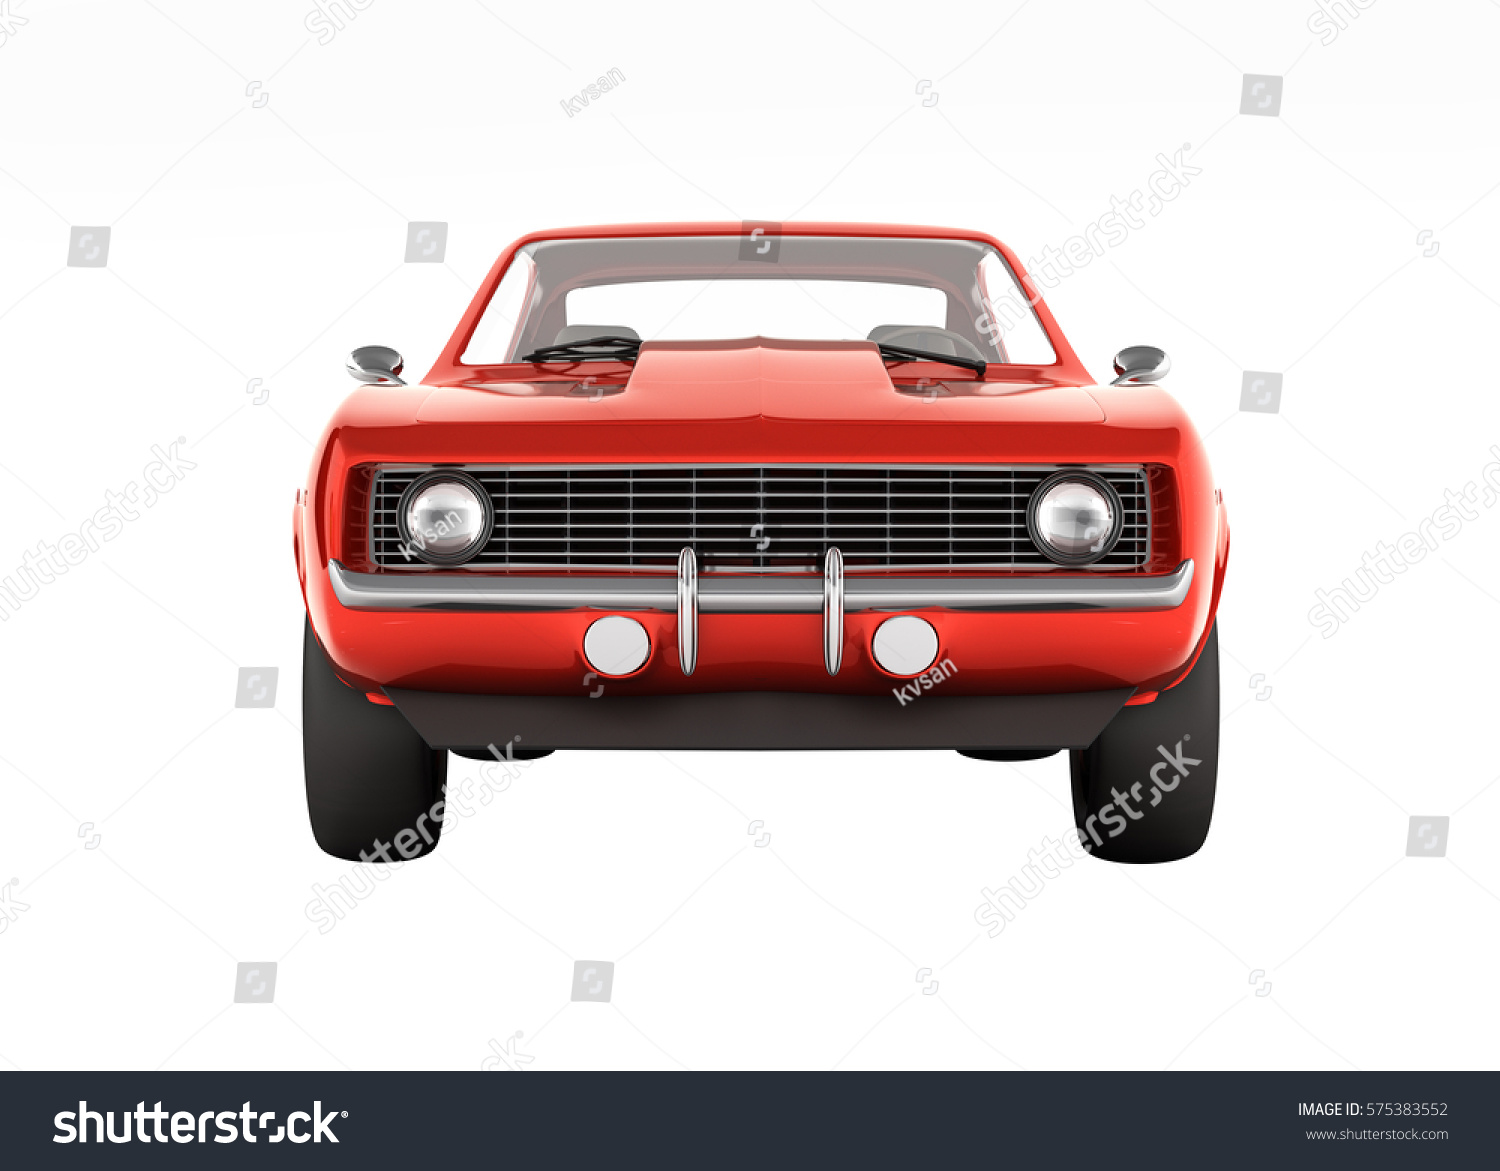 Muscle Car Front View Without Shadow Stock Illustration